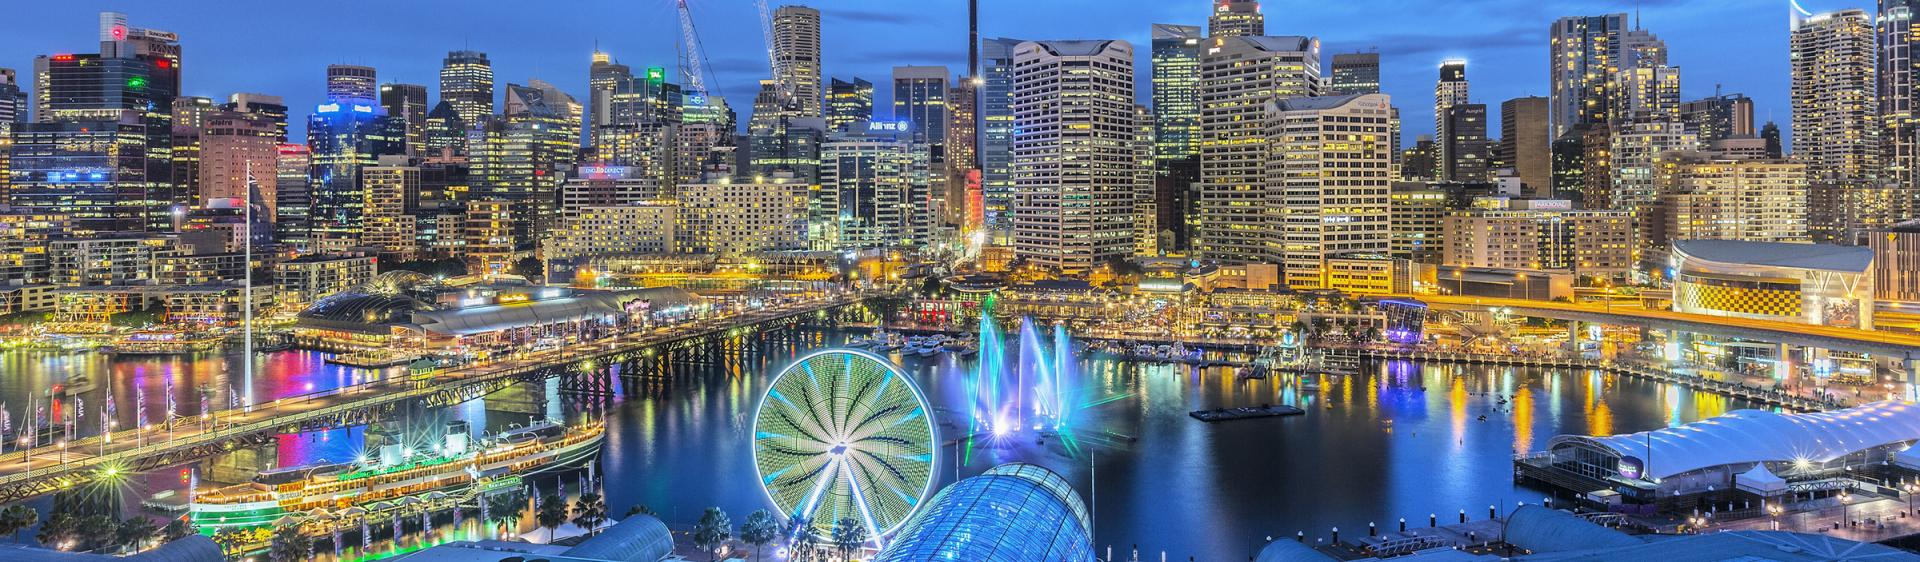 darling harbour deals thursday